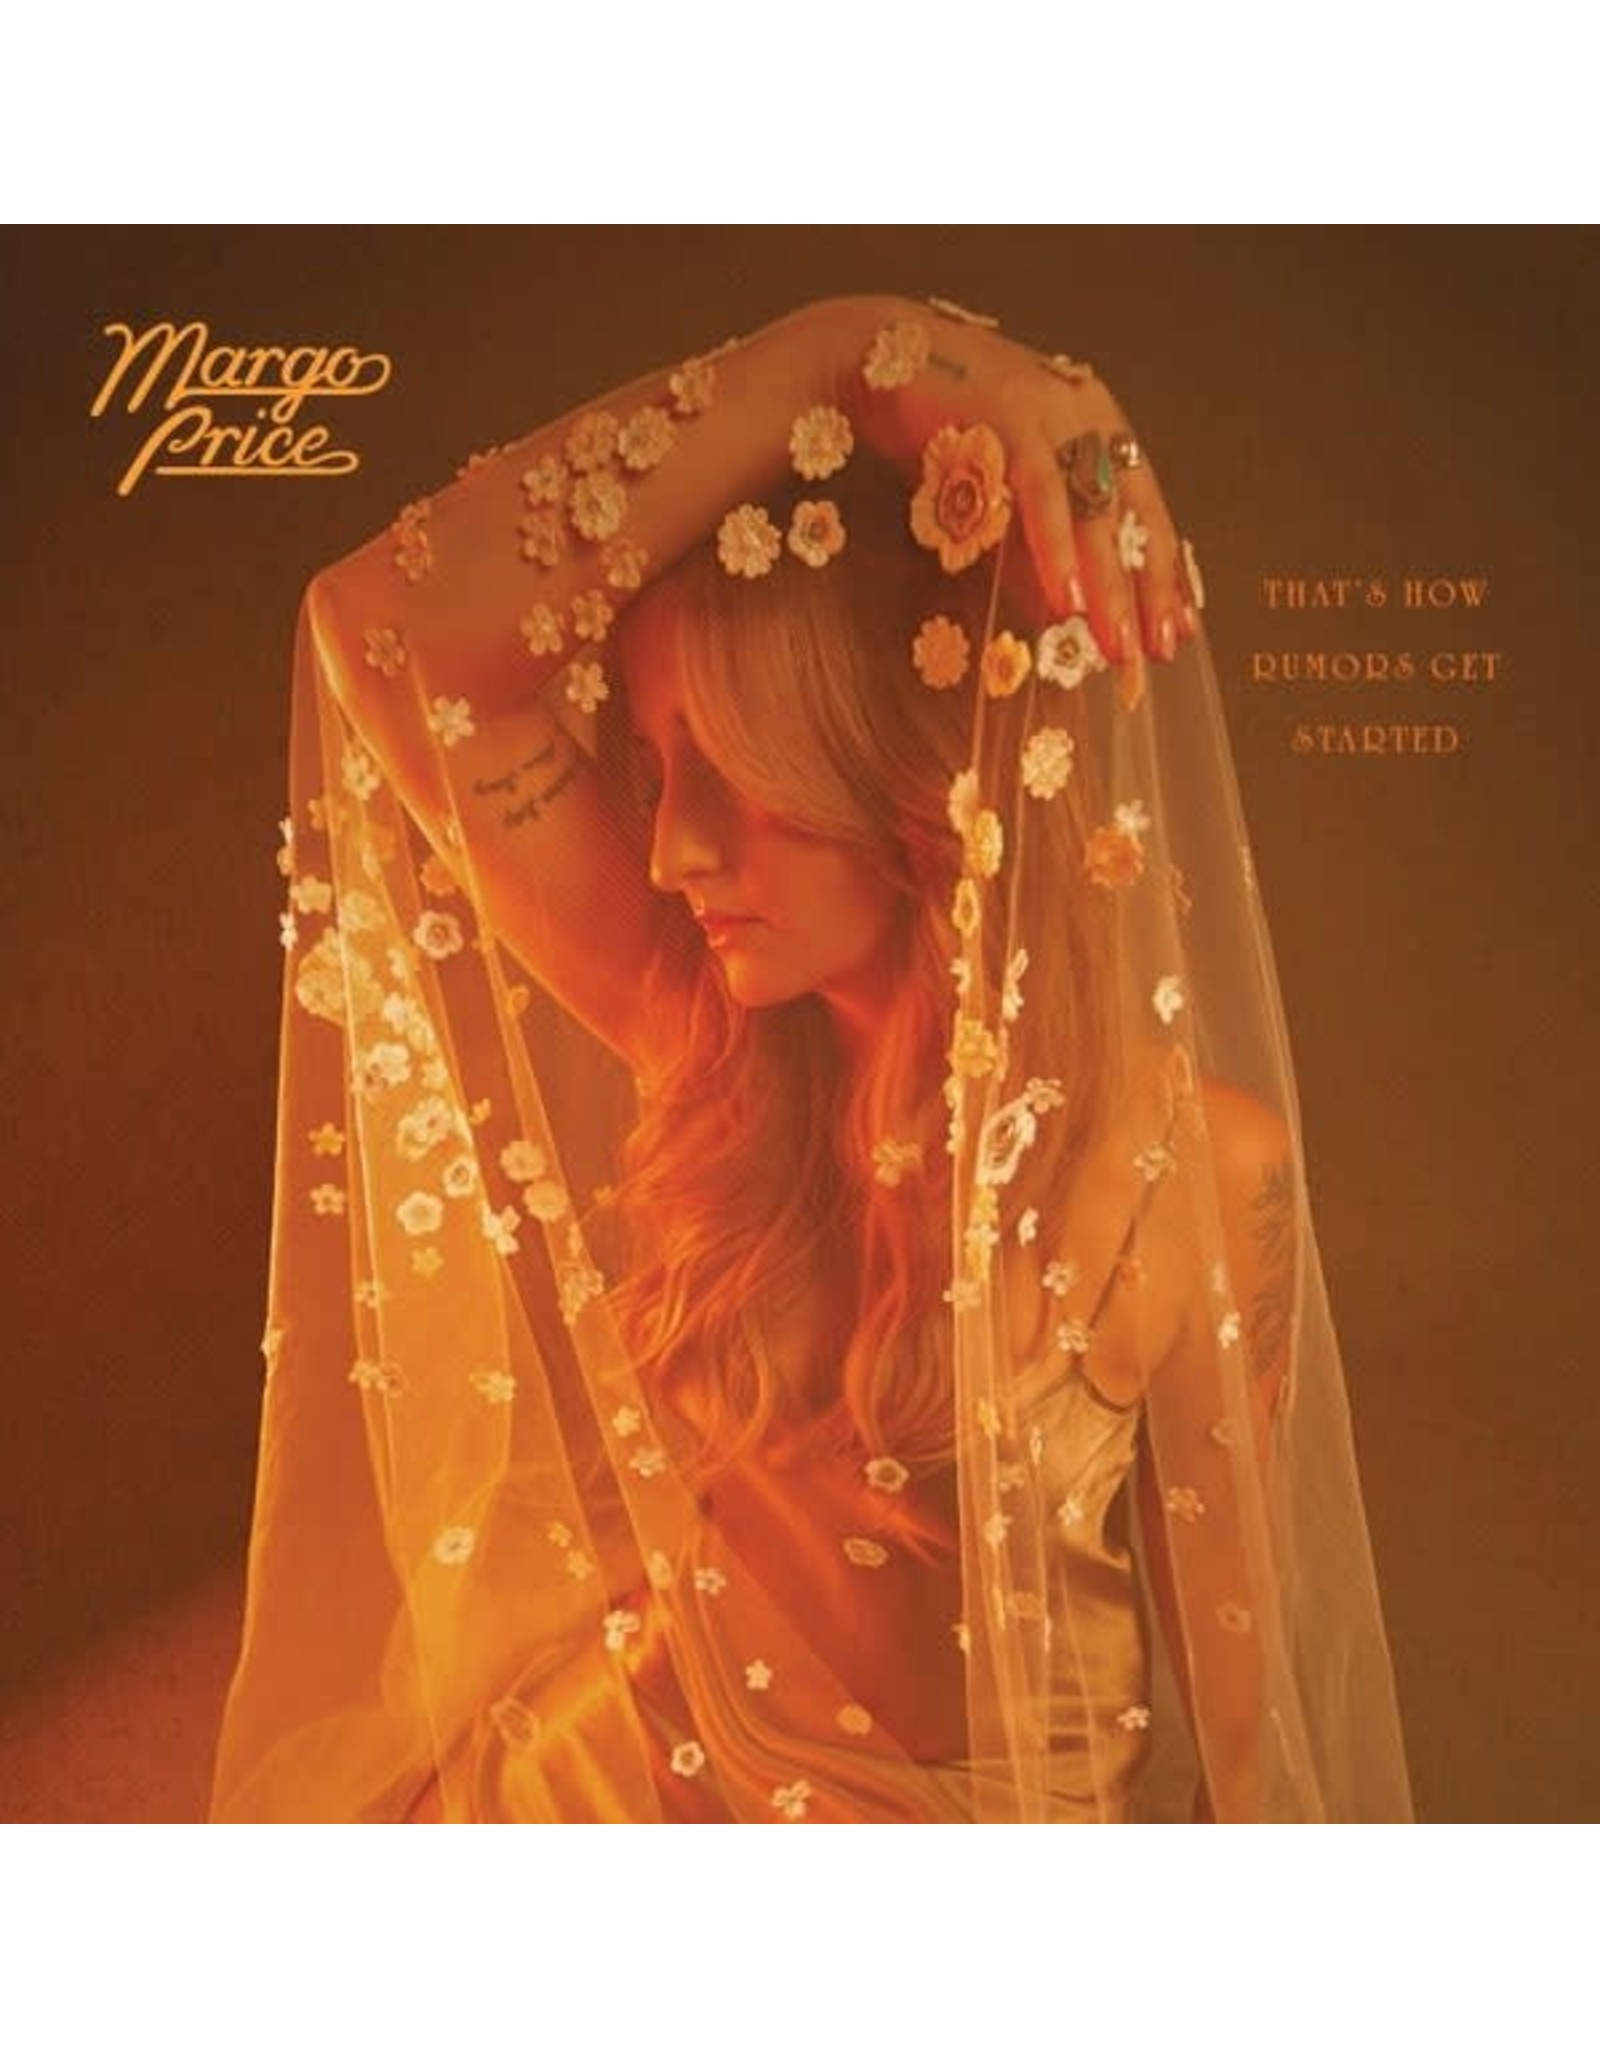 Price, Margo - That's How Rumors Get Started LP